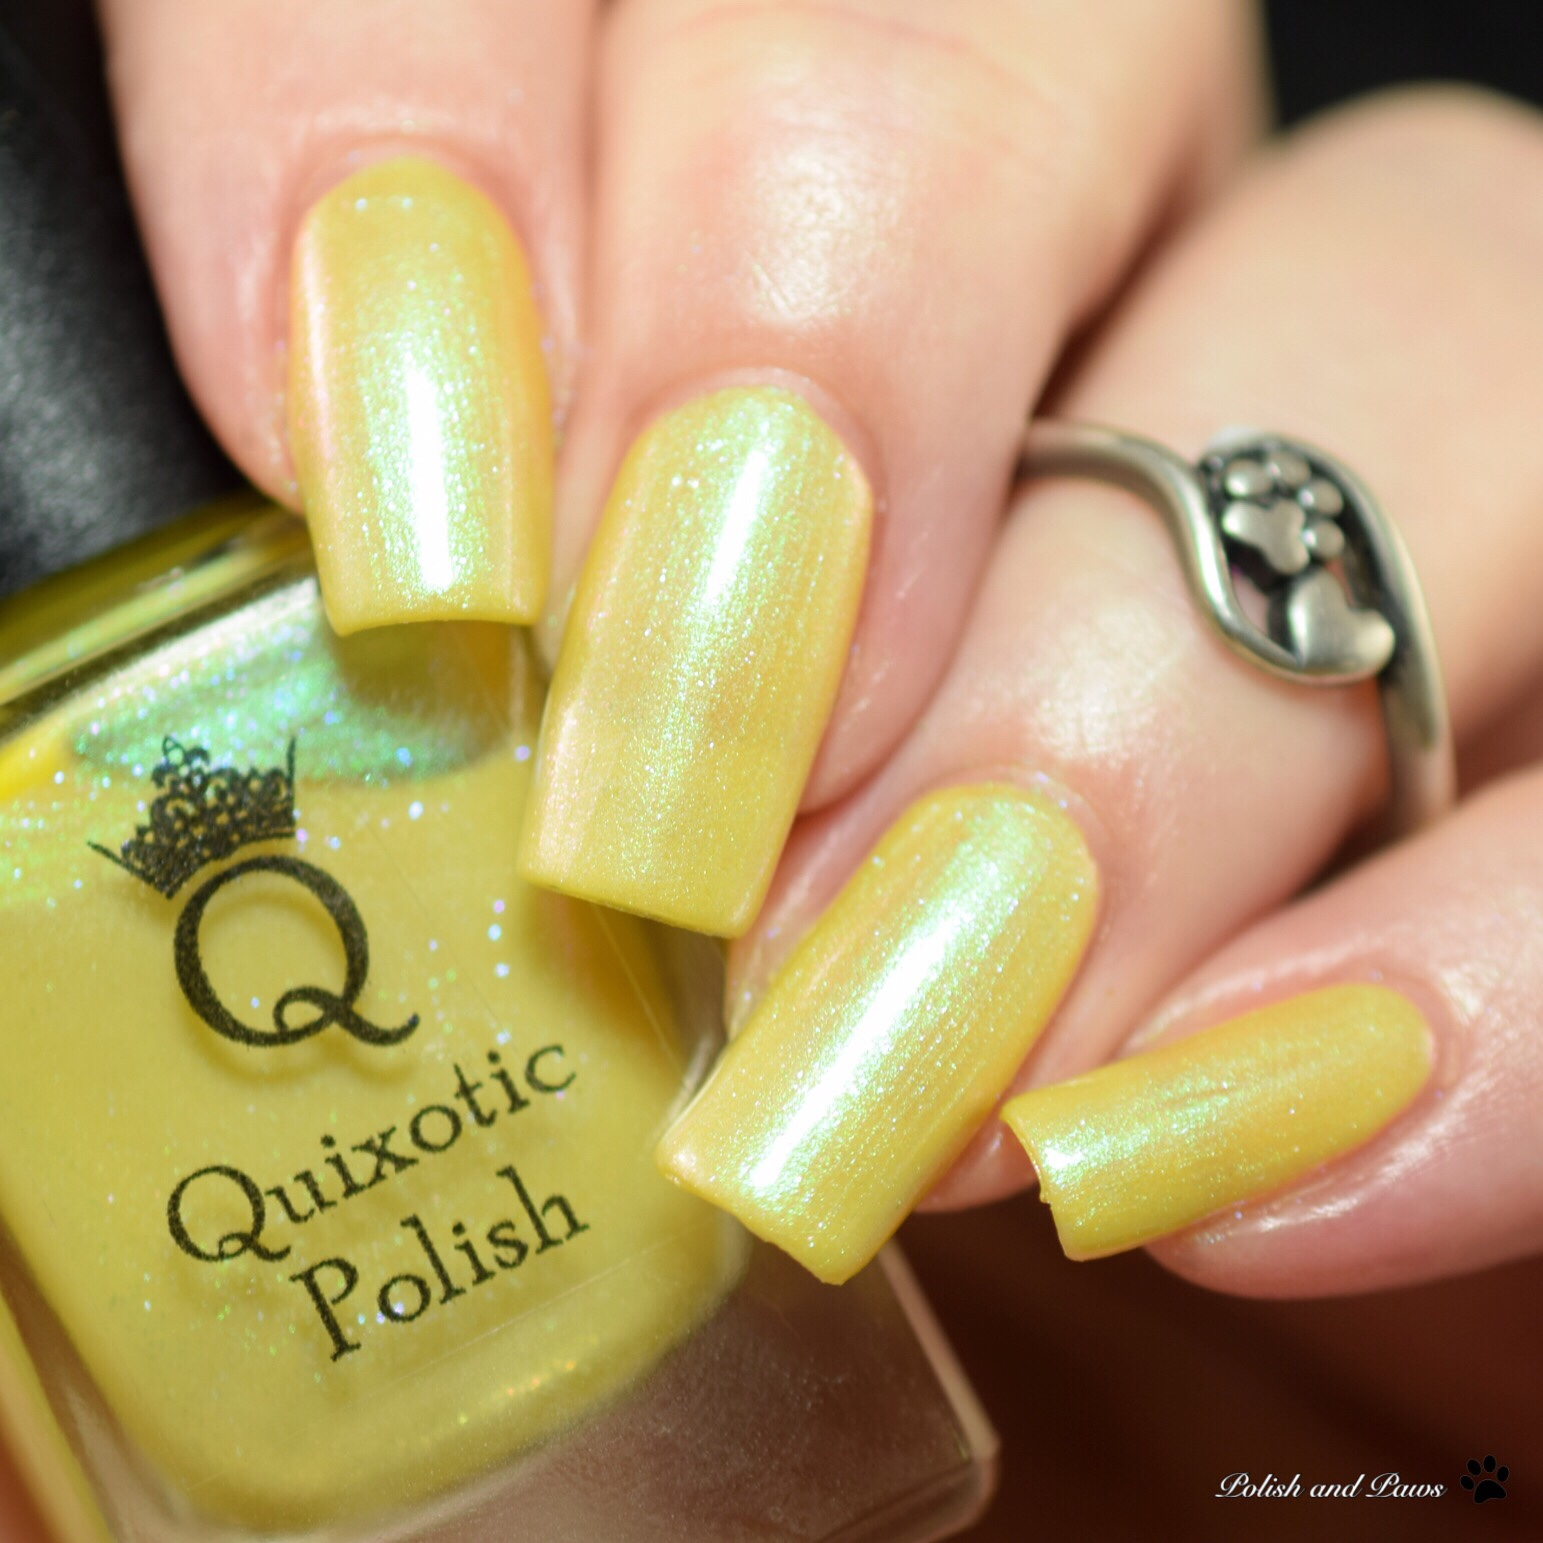 Quixotic Polish Mrs. Potts